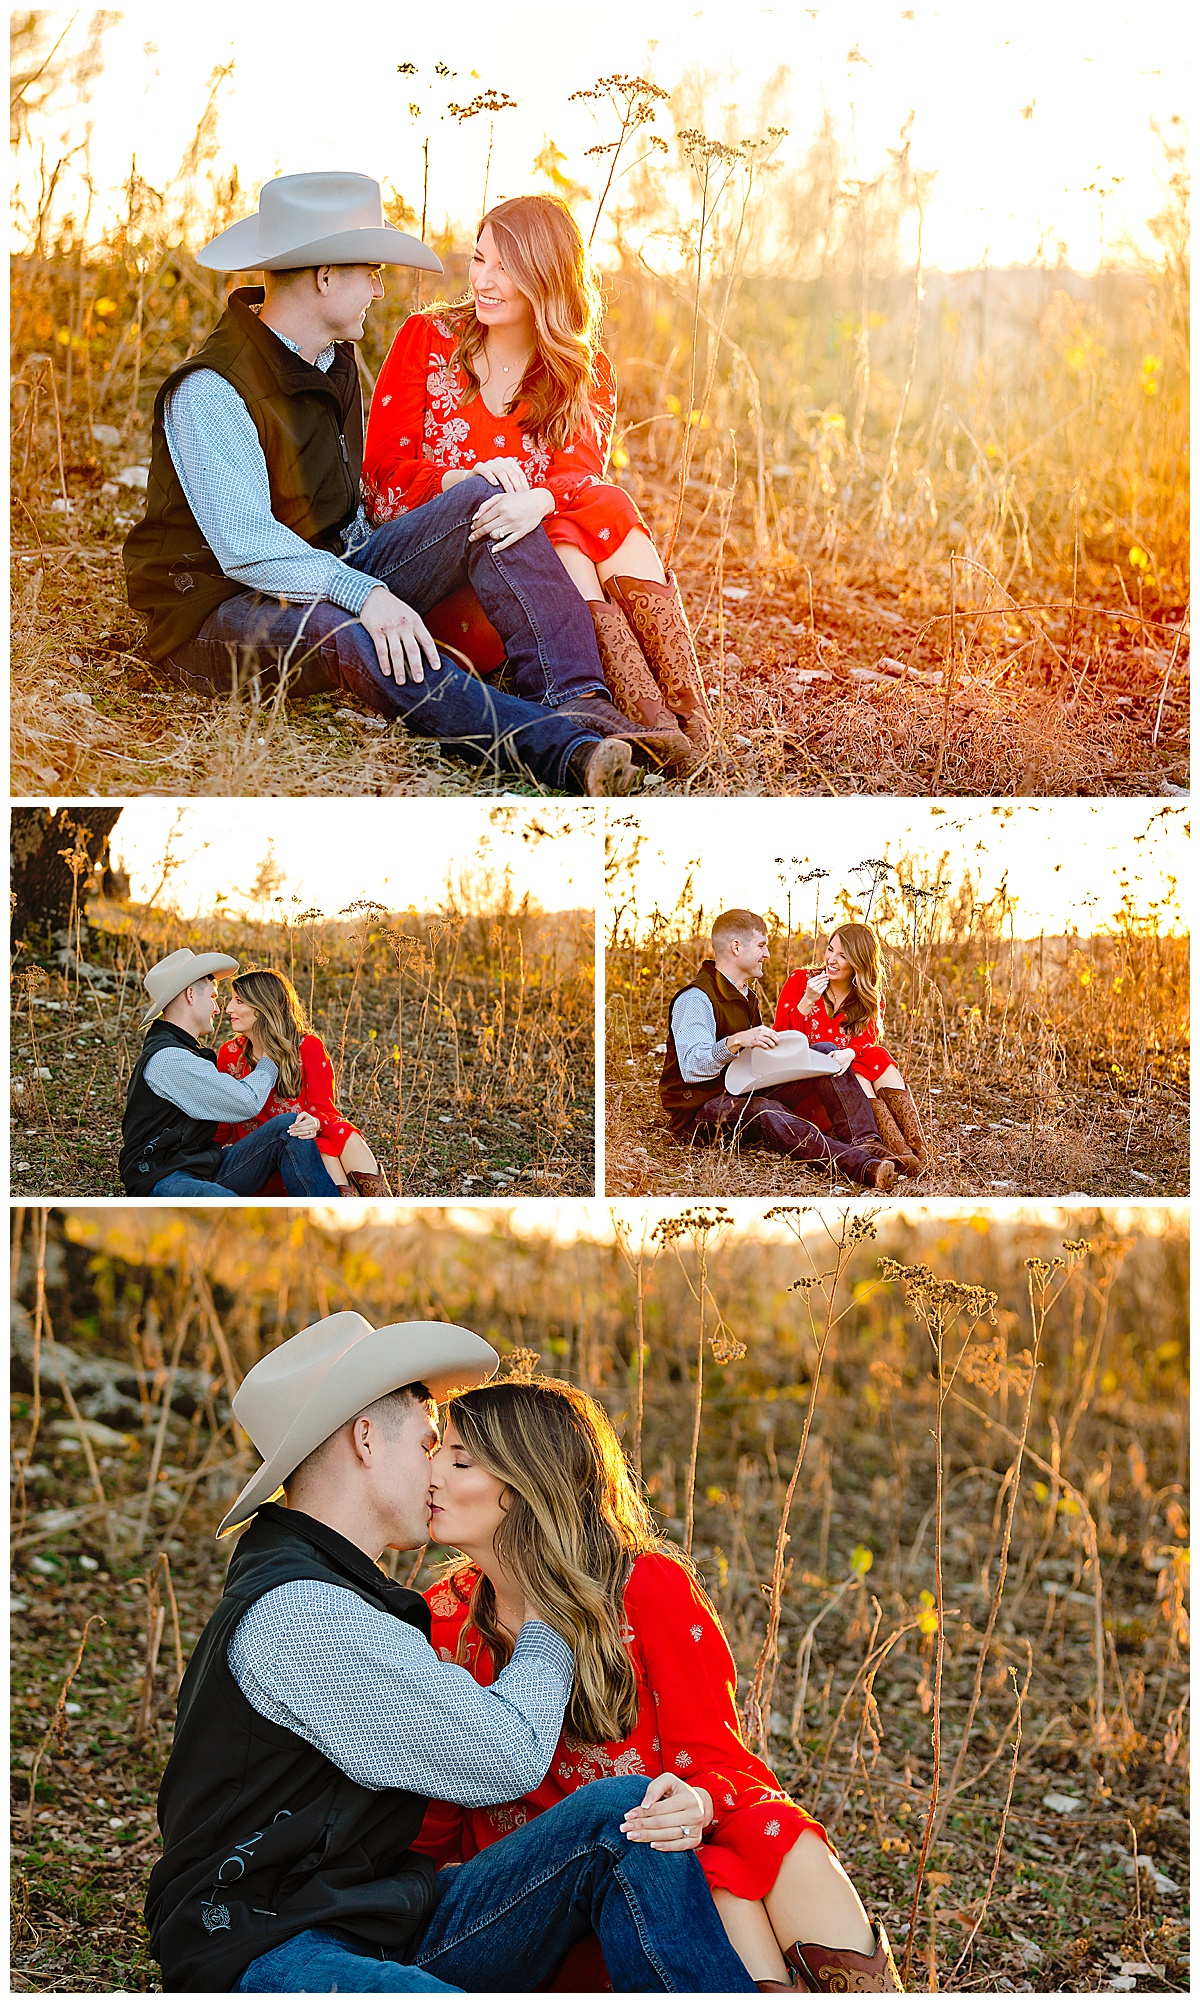 South-Texas-Wedding-Photographer-Engagement-Photos-Happy-H-Ranch-Comfort-Texas-Sunset-Couples-Carly-Barton-Photography-Justin-Erica_0012.jpg